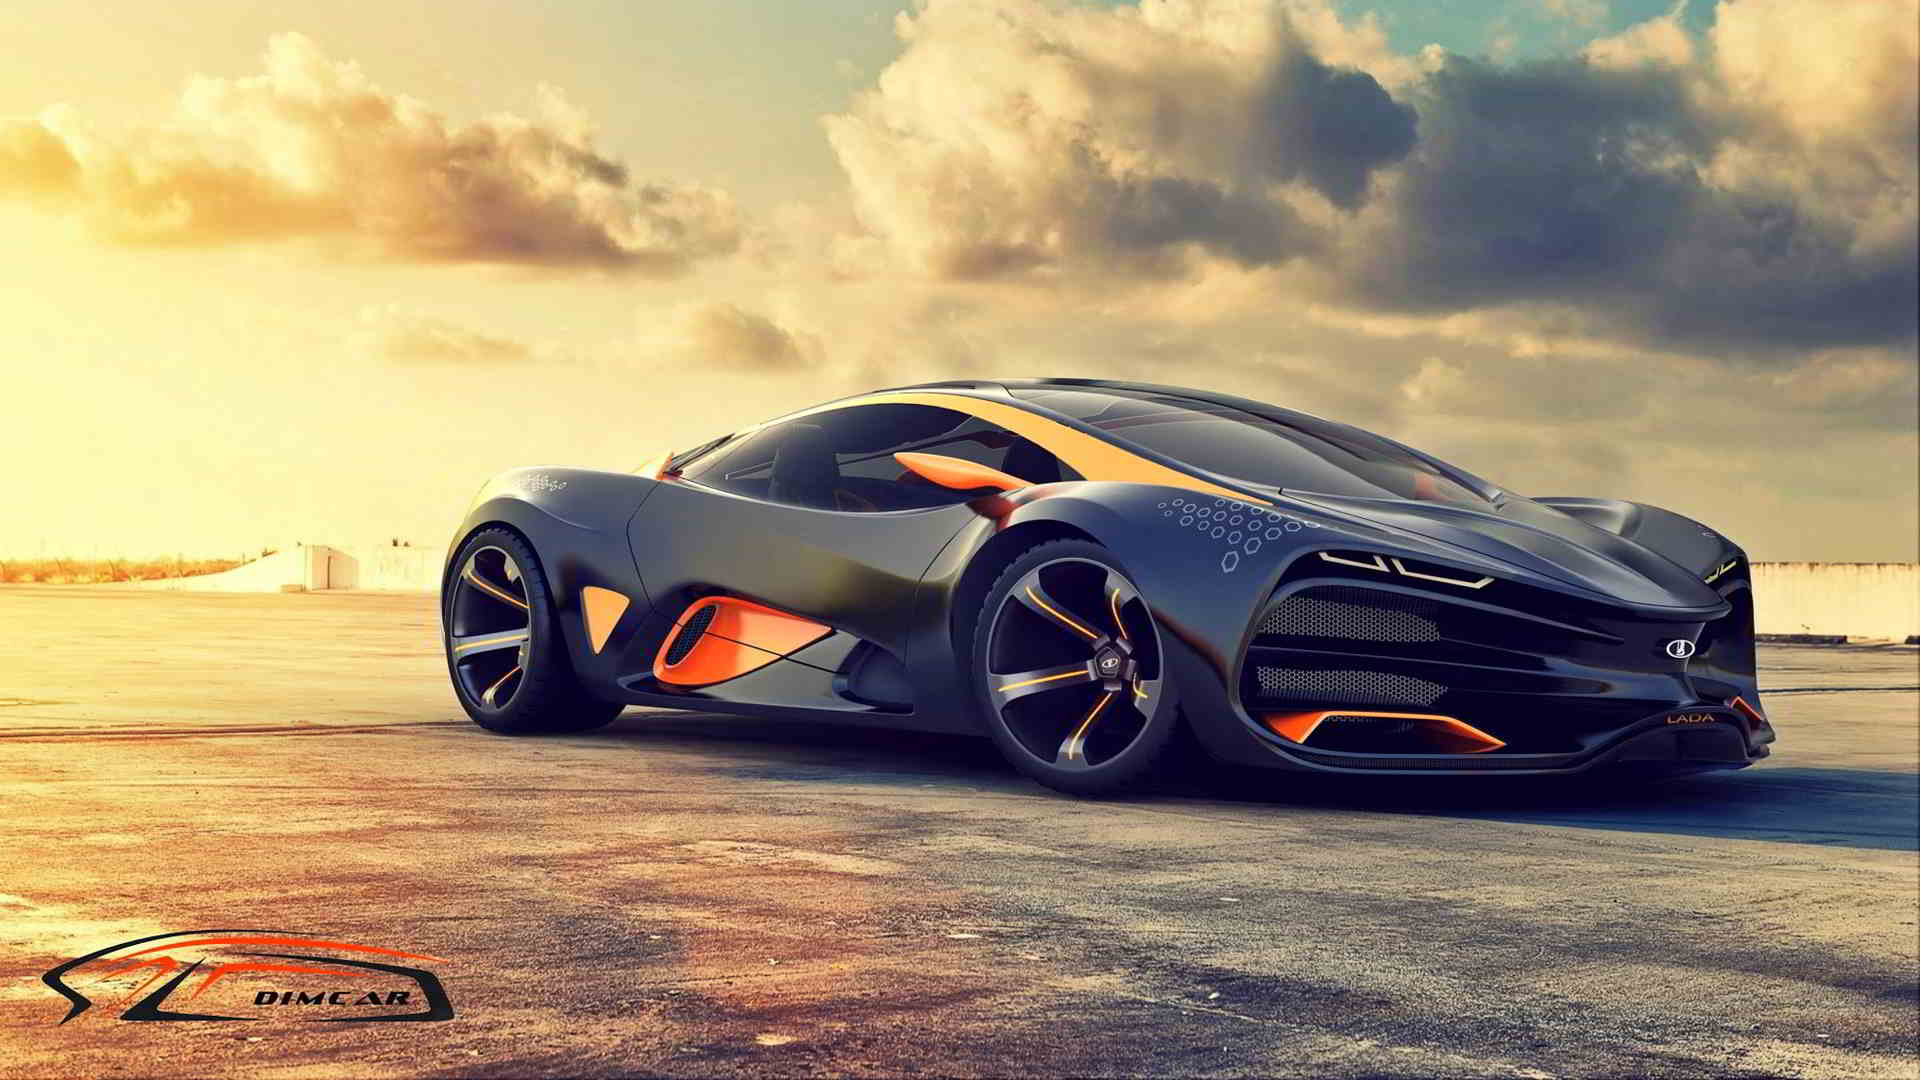 46 Full HD Cool Car Wallpapers That Look Amazing Download 1920x1080